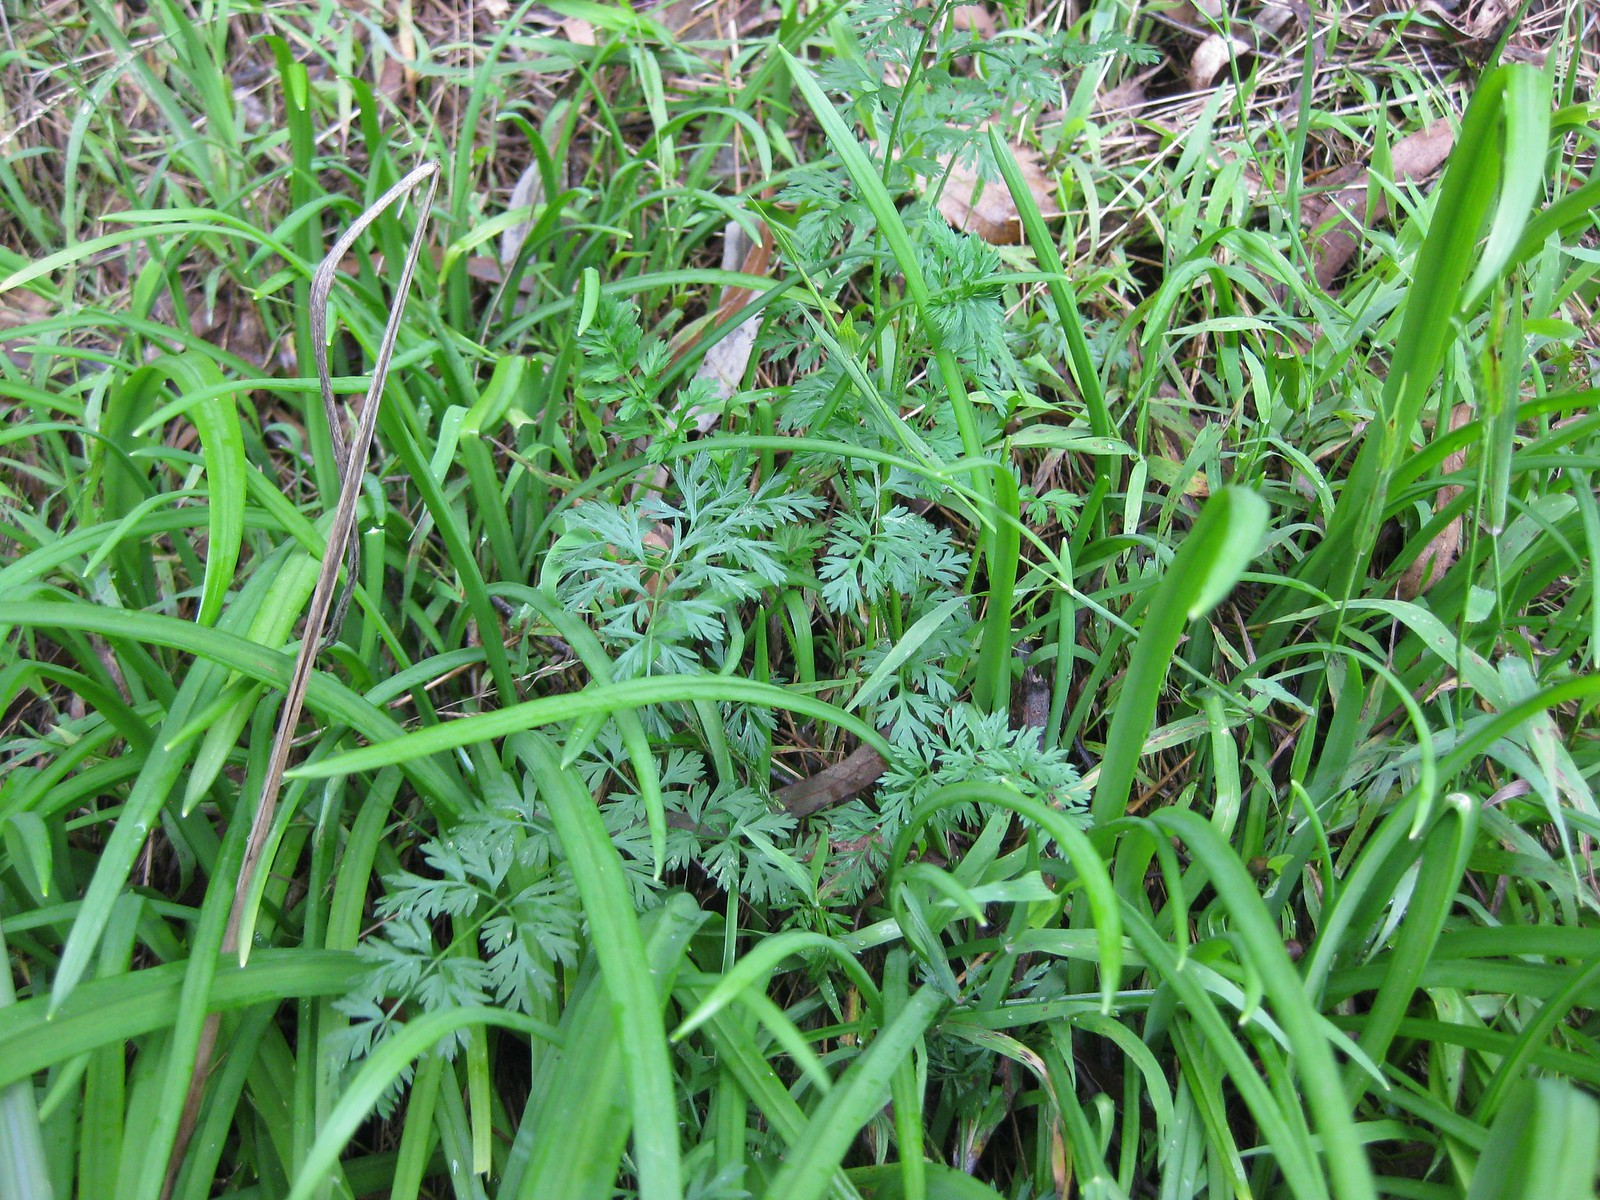 Queen Anne's lace AKA wild carrot (looks dangerously like poisonous hemlock!) and angled onion